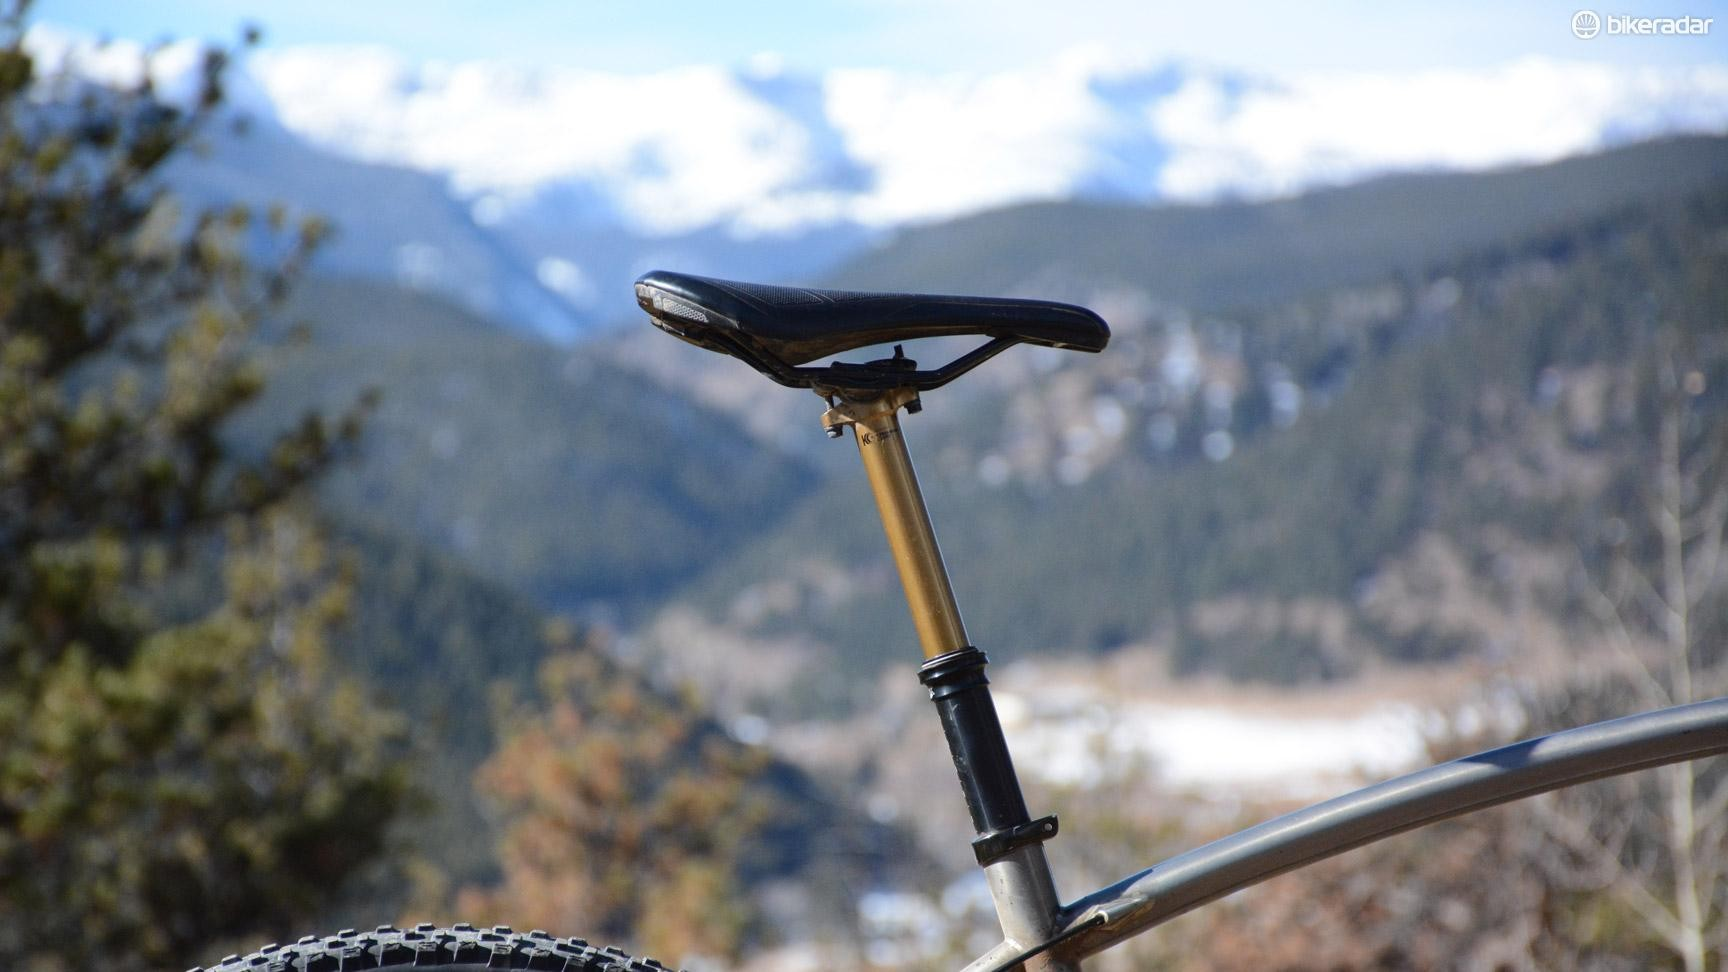 Fox's Transfer Factory dropper post has the performance and reliability to make it possibly the best dropper available